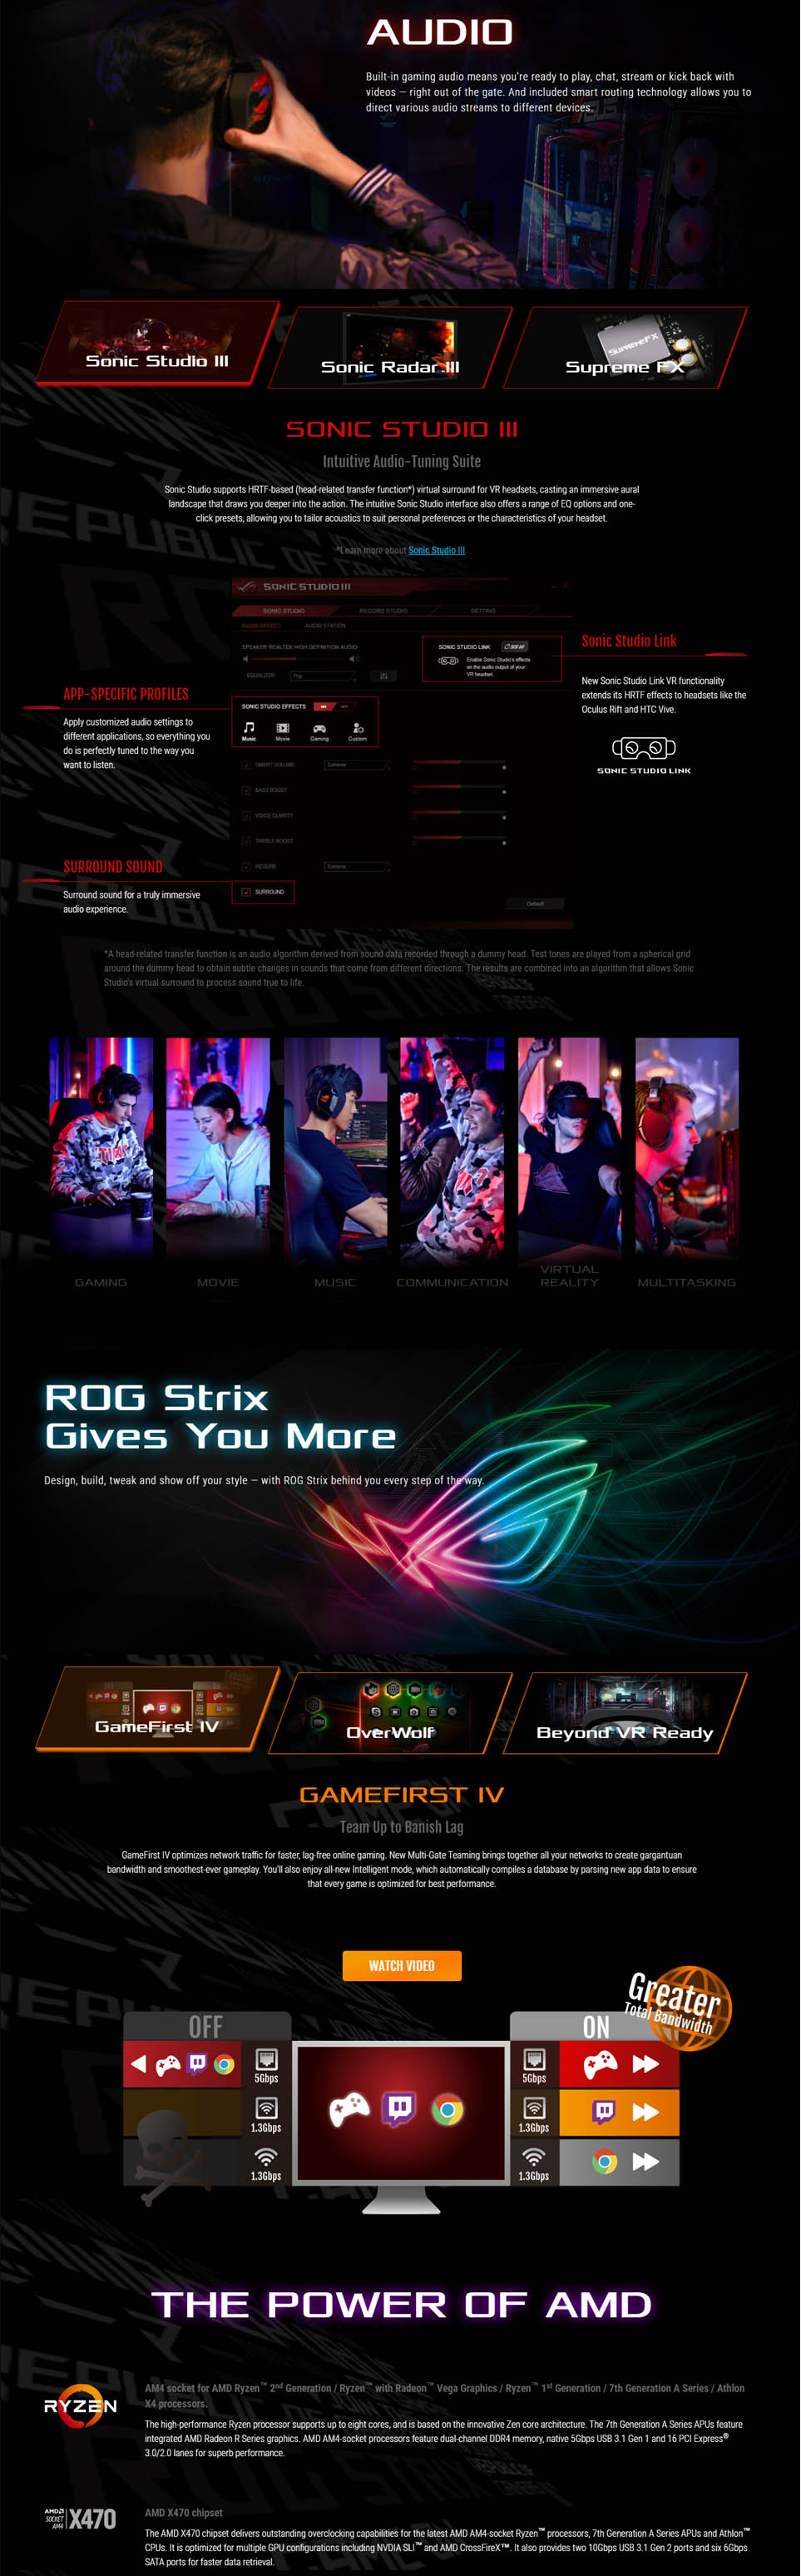 Asus ROG Strix X470-F Gaming Motherboard (AMD)